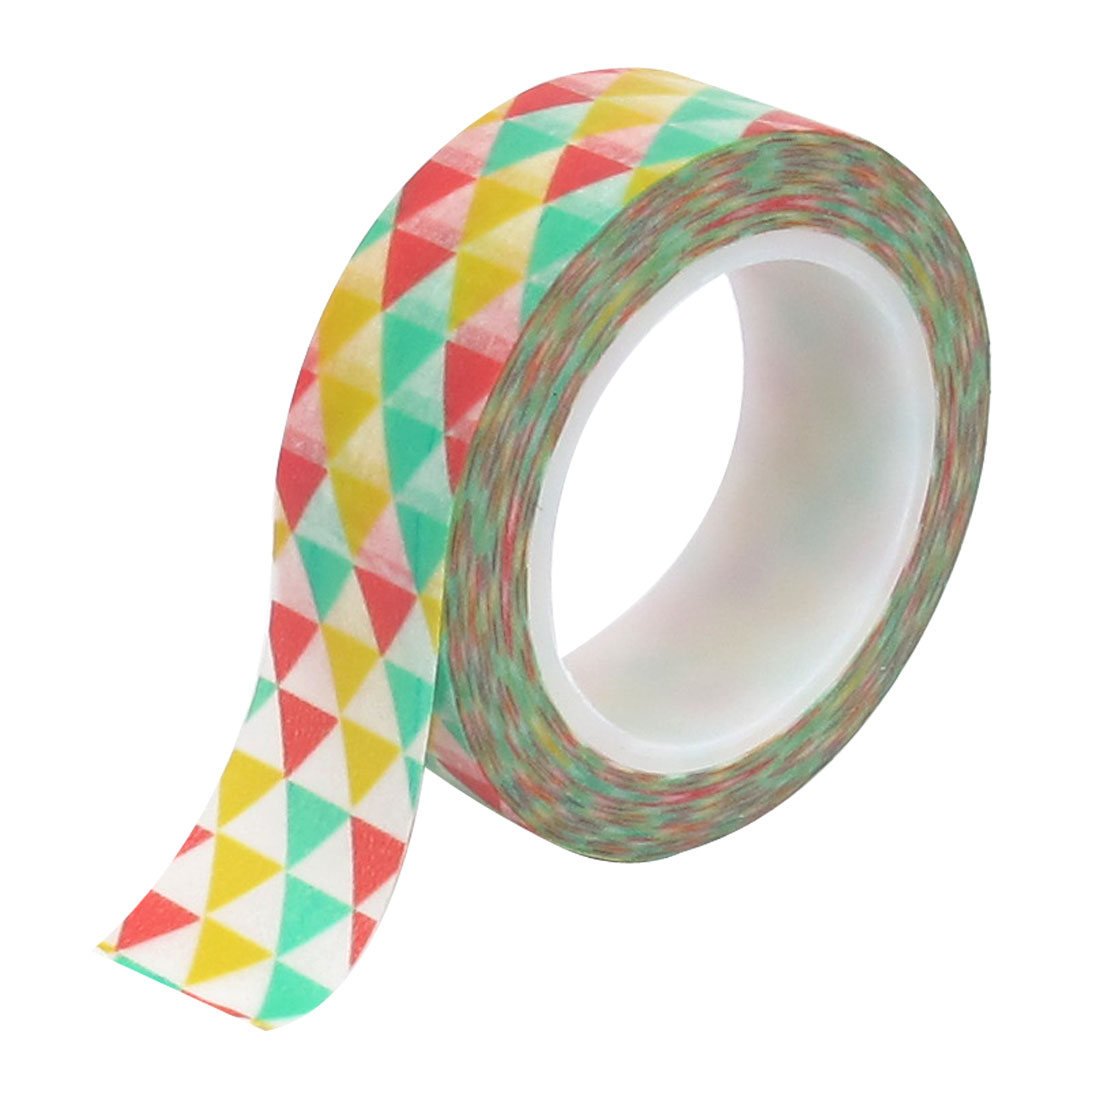 Trilateral Pattern DIY Decorative Sticker School Adhesive Washi Paper Tape